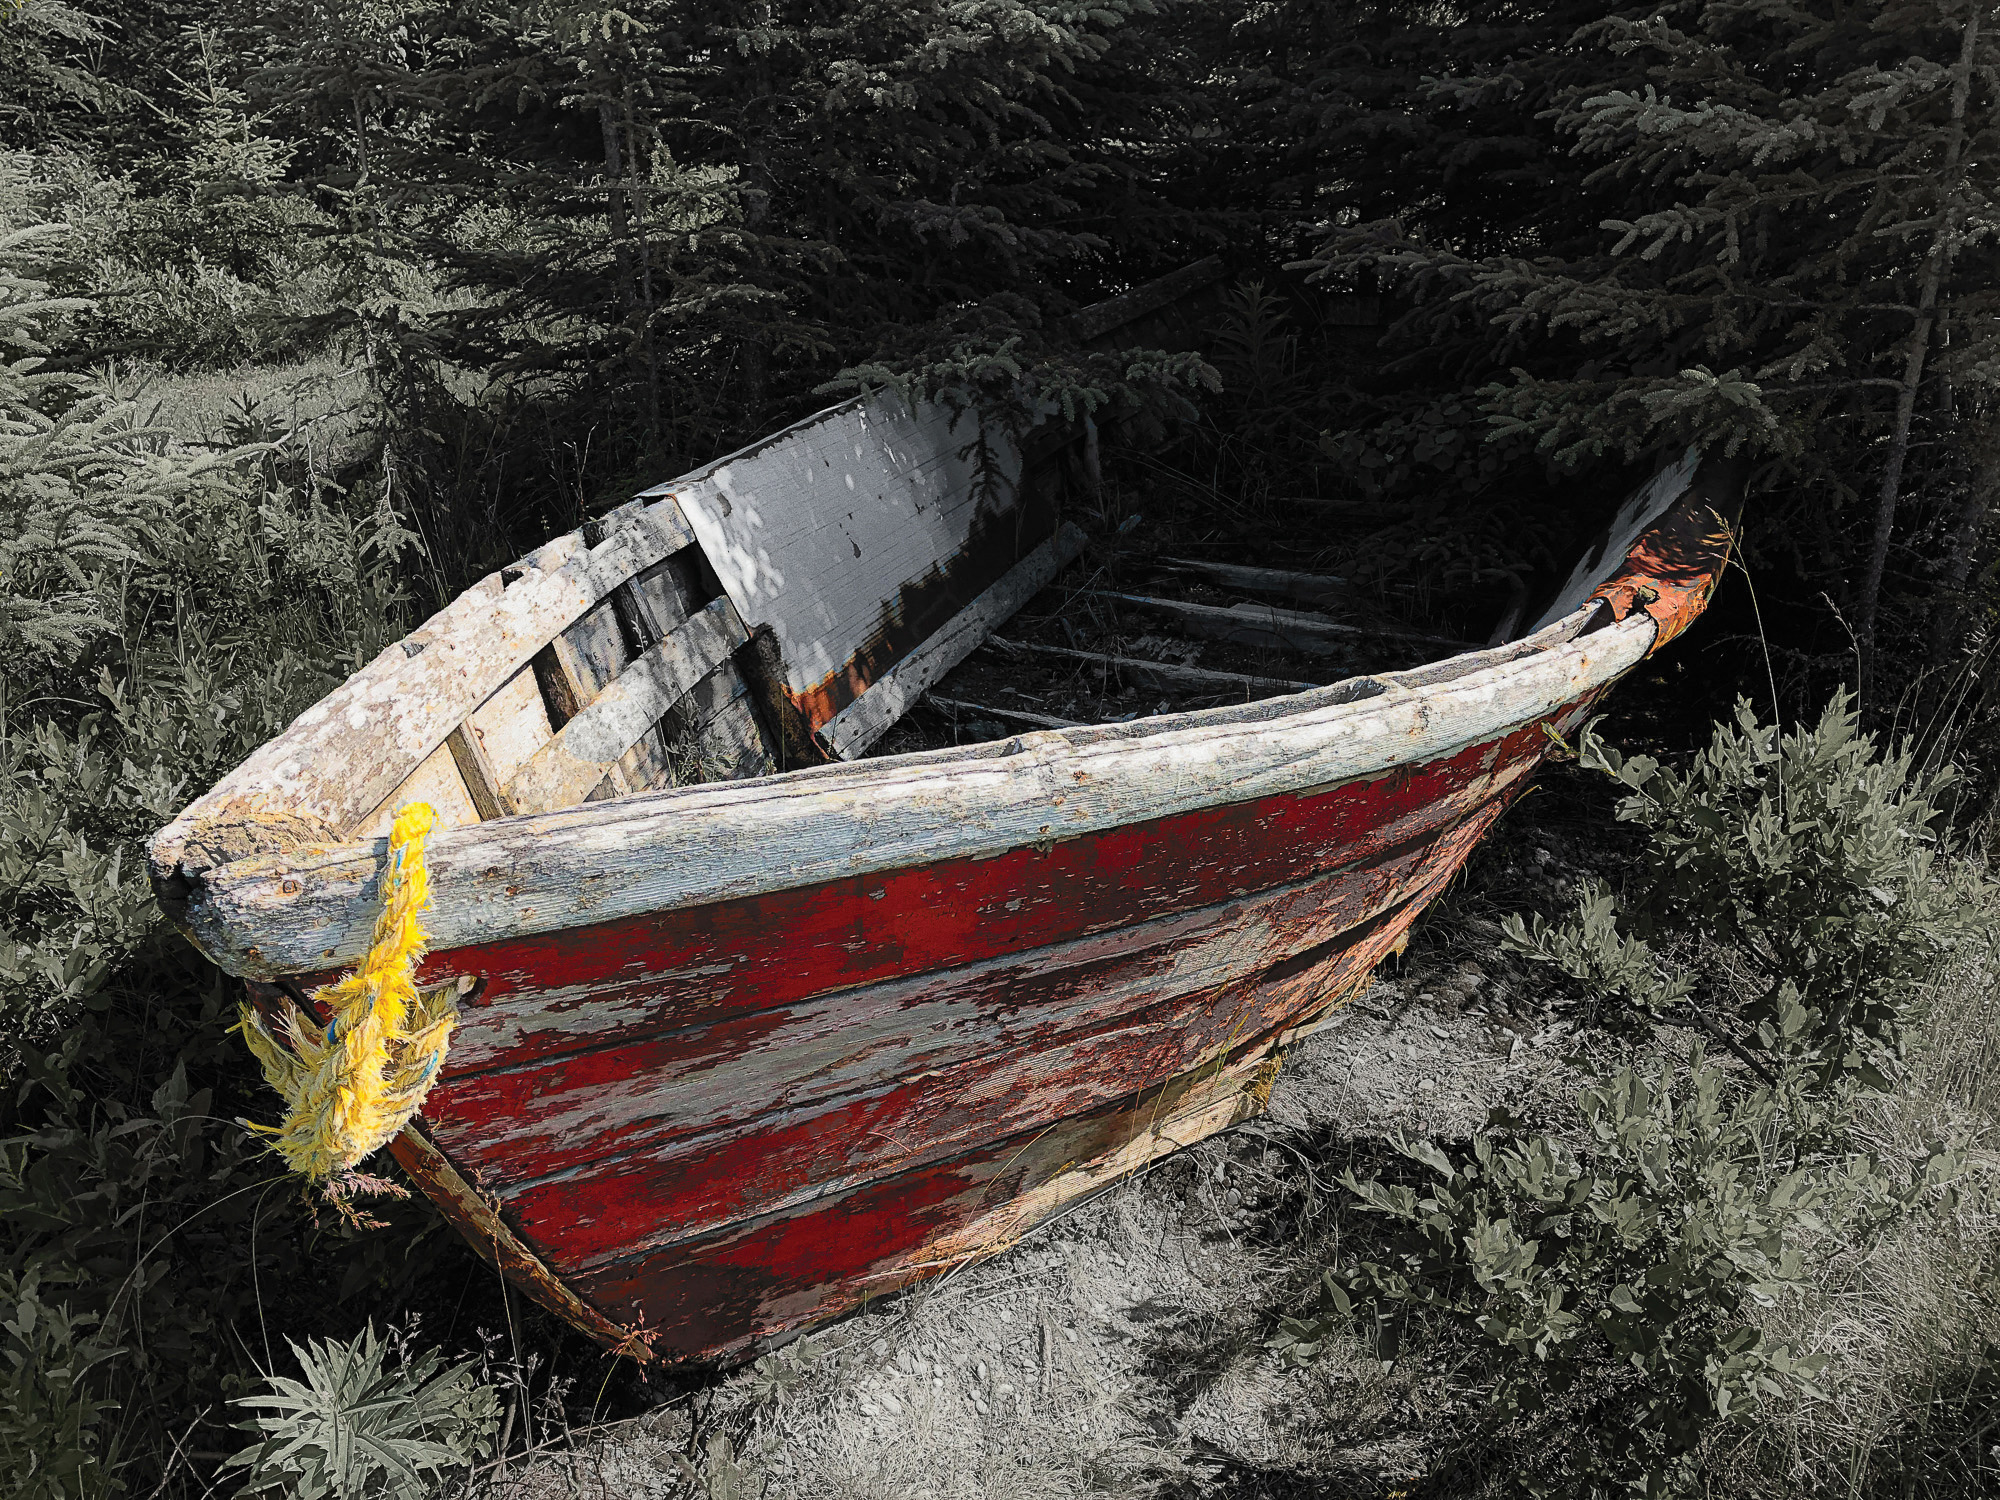 First place, entry number 12, Not So Seaworthy by Denny Huber